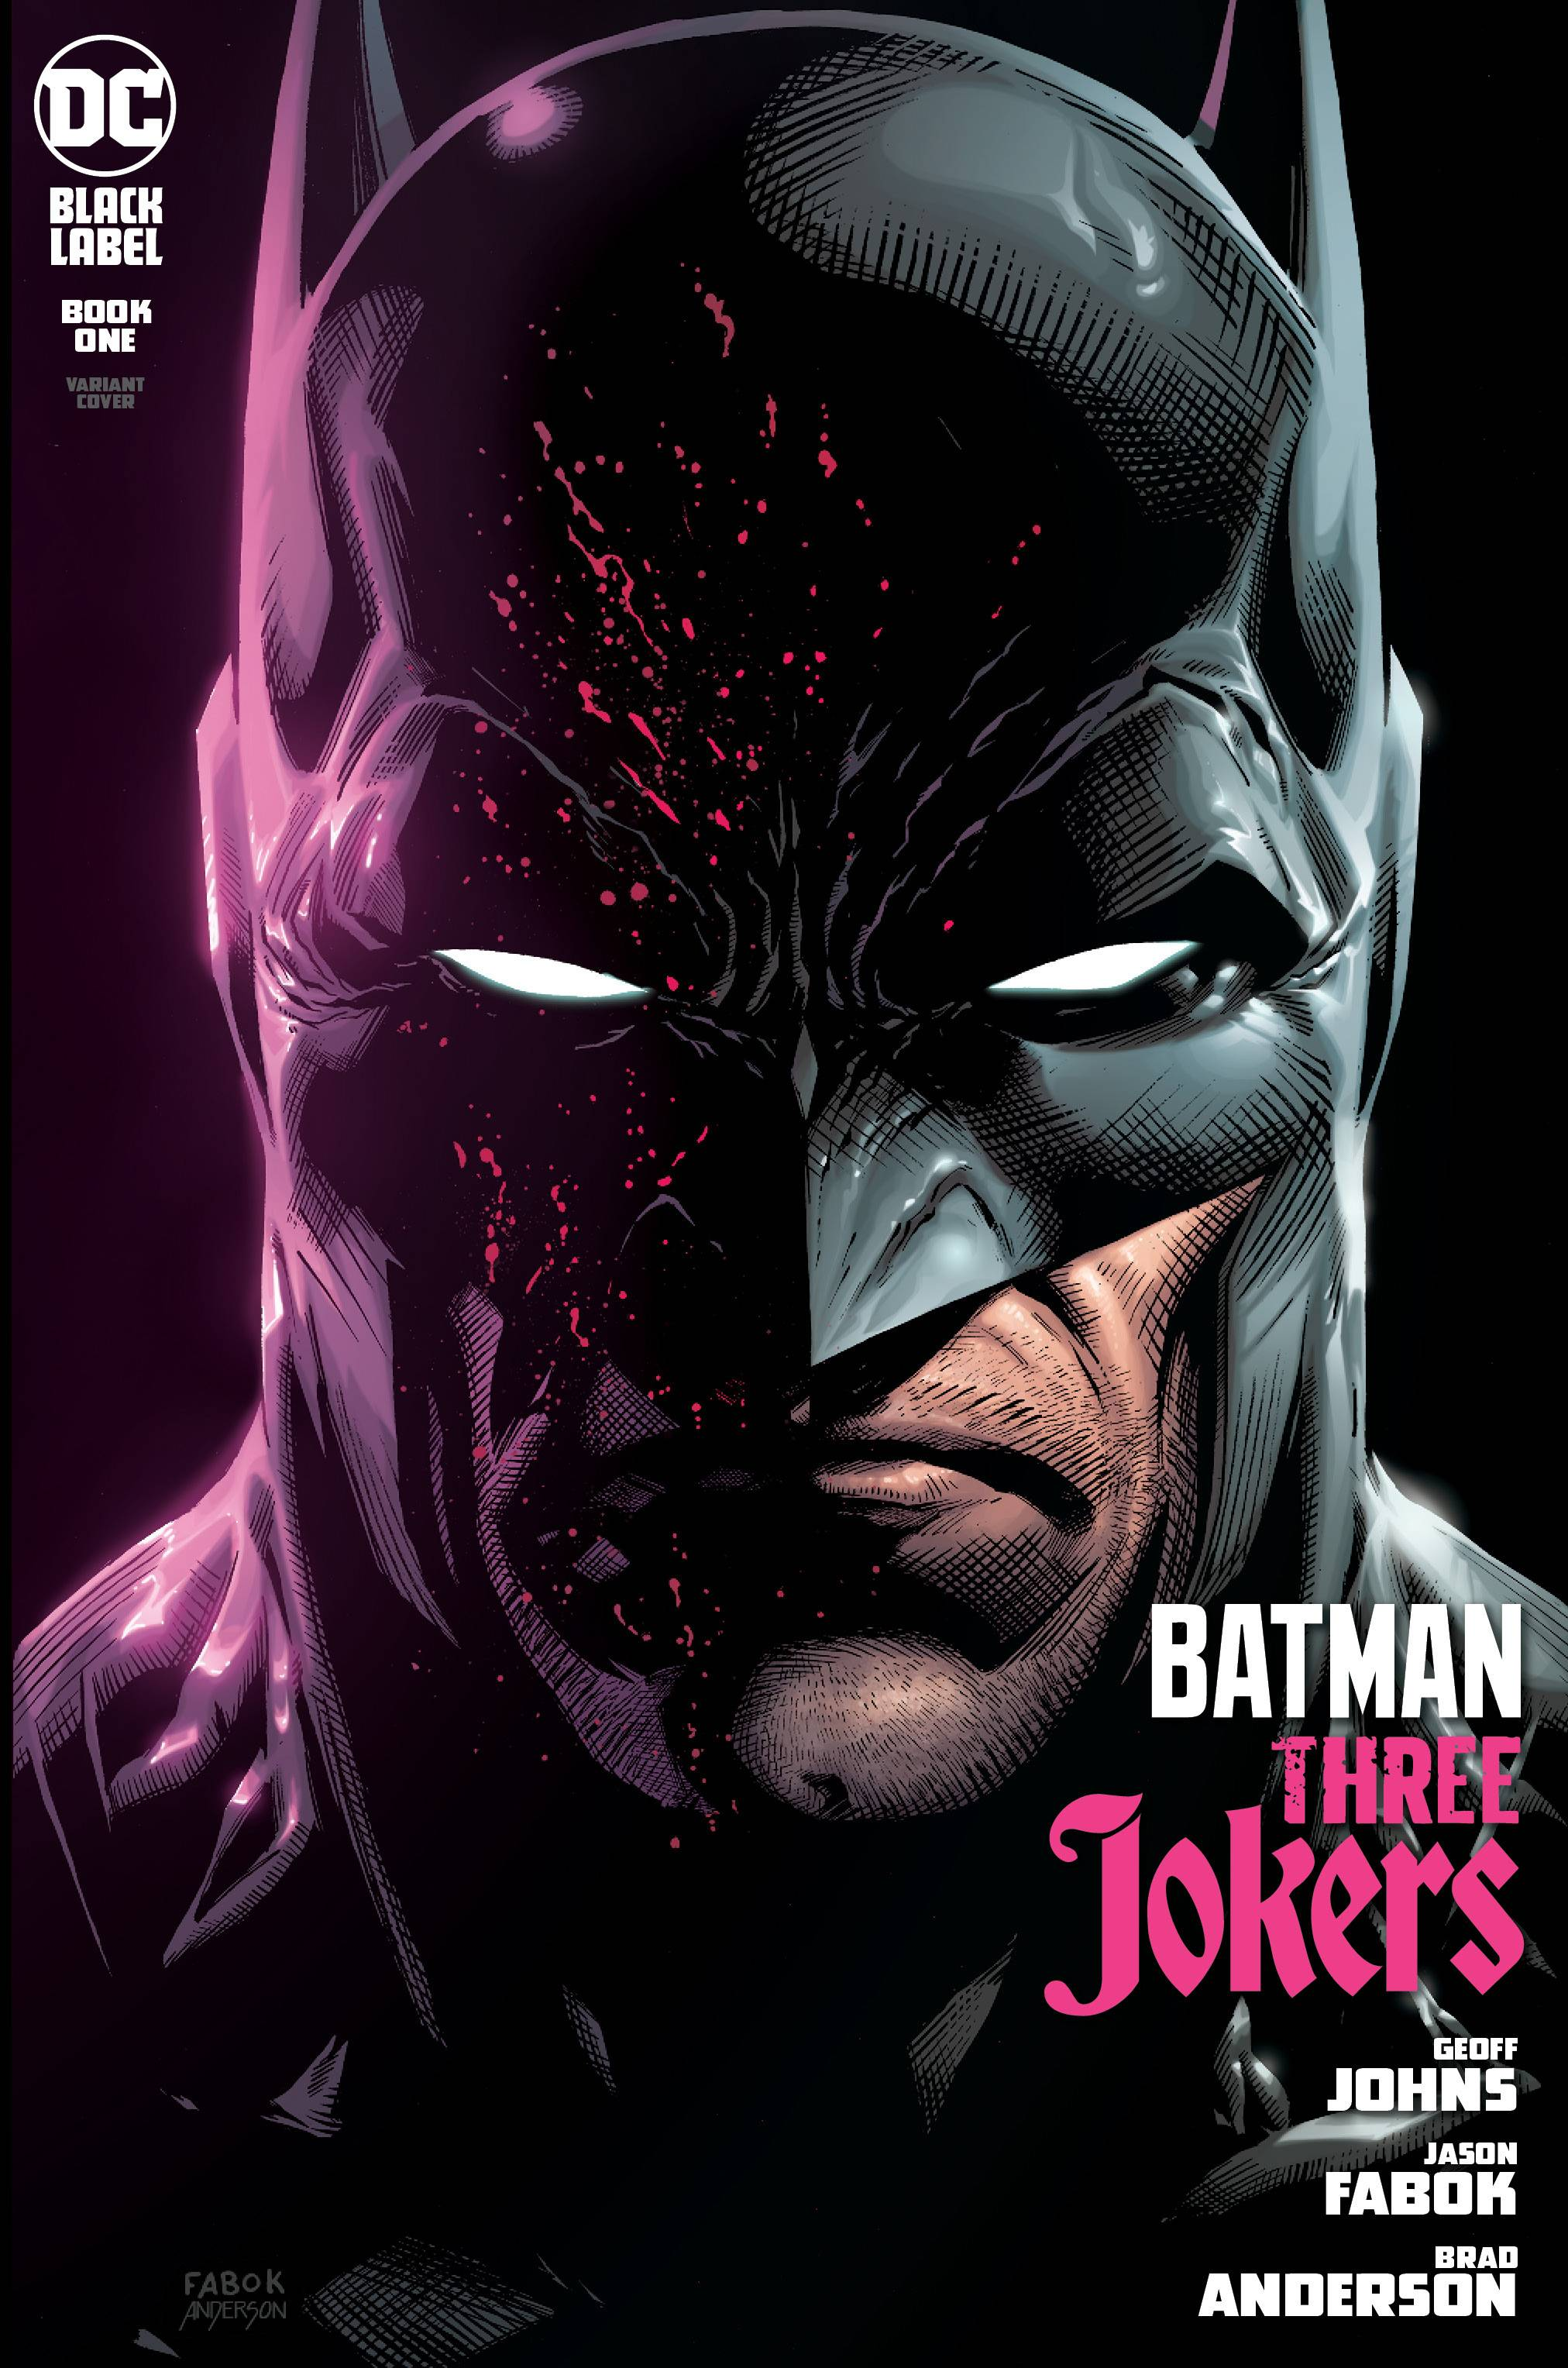 BATMAN THREE JOKERS #1 (OF 3) JASON FABOK VAR ED (RES)